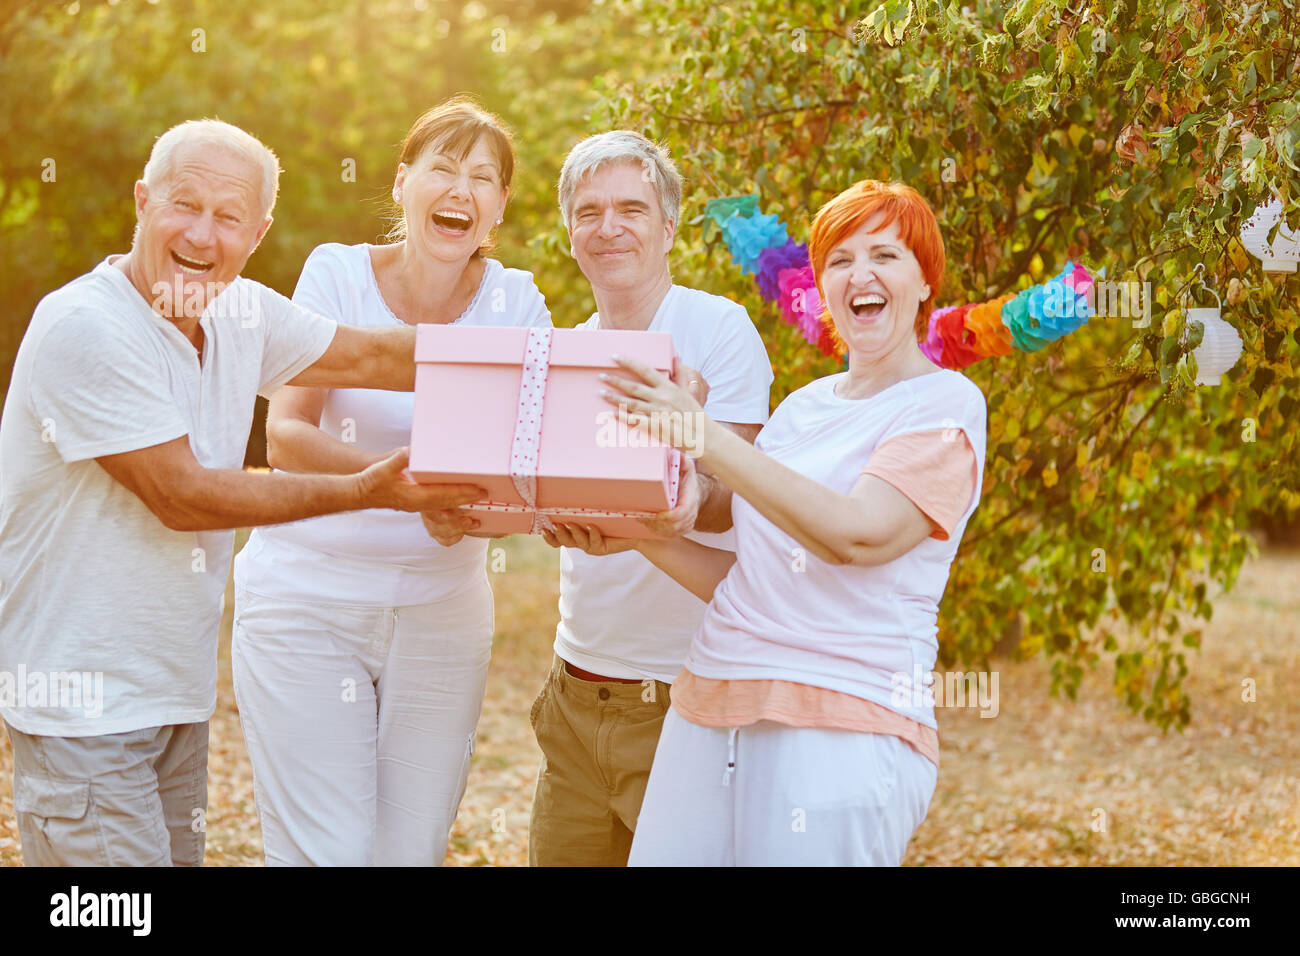 Seniors laughing and smiling with a birthday present at a party - Stock Image